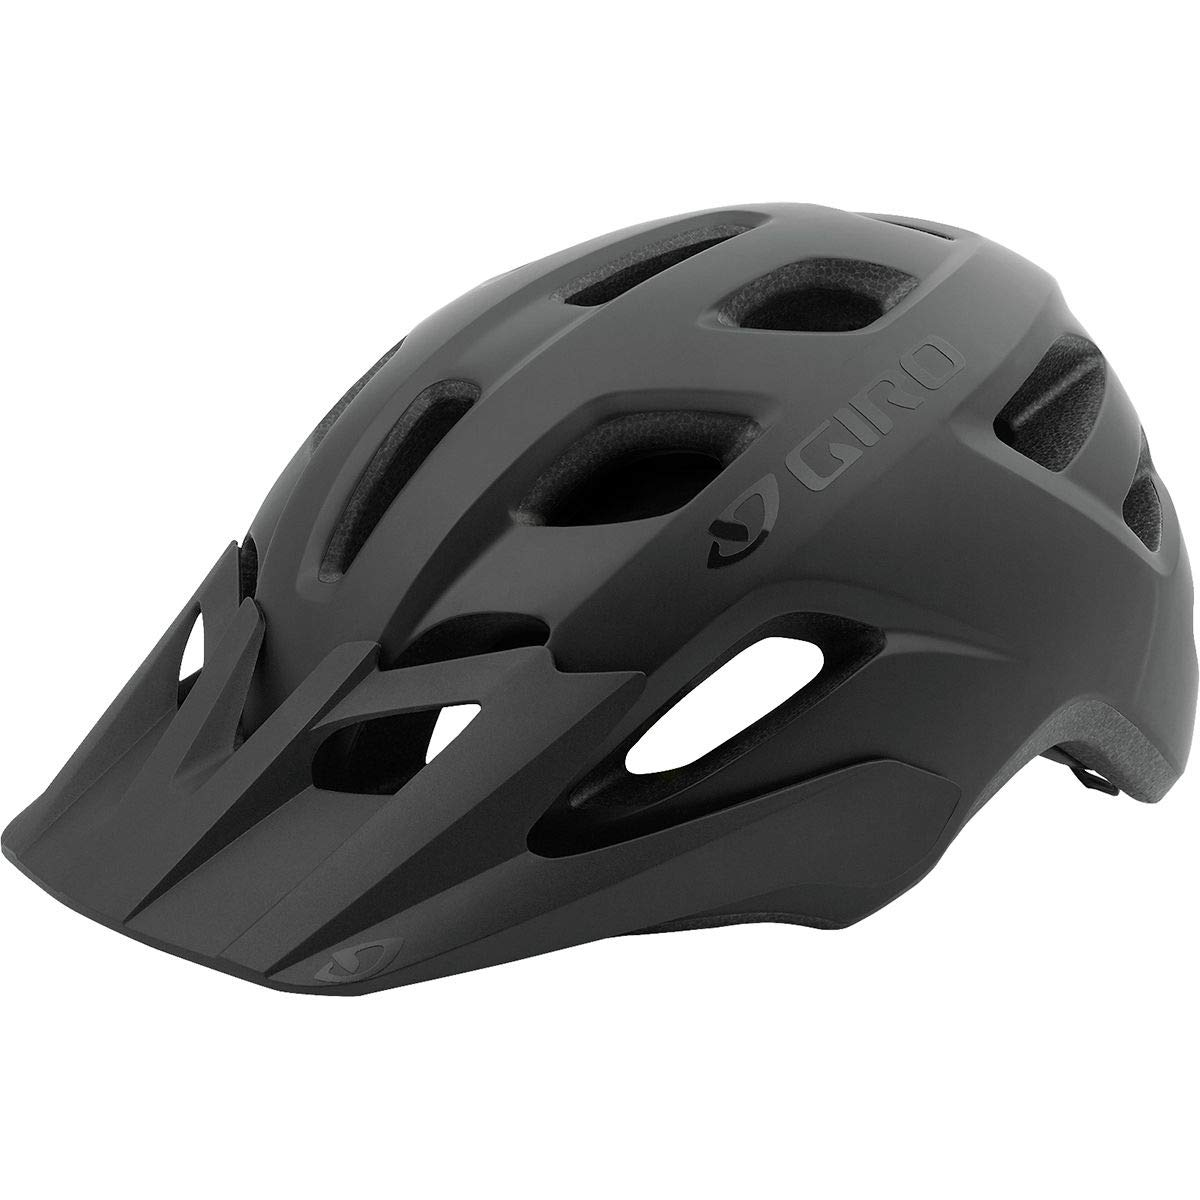 Giro Fixture MIPS Bike Helmet - Matte Black,One Size by Giro